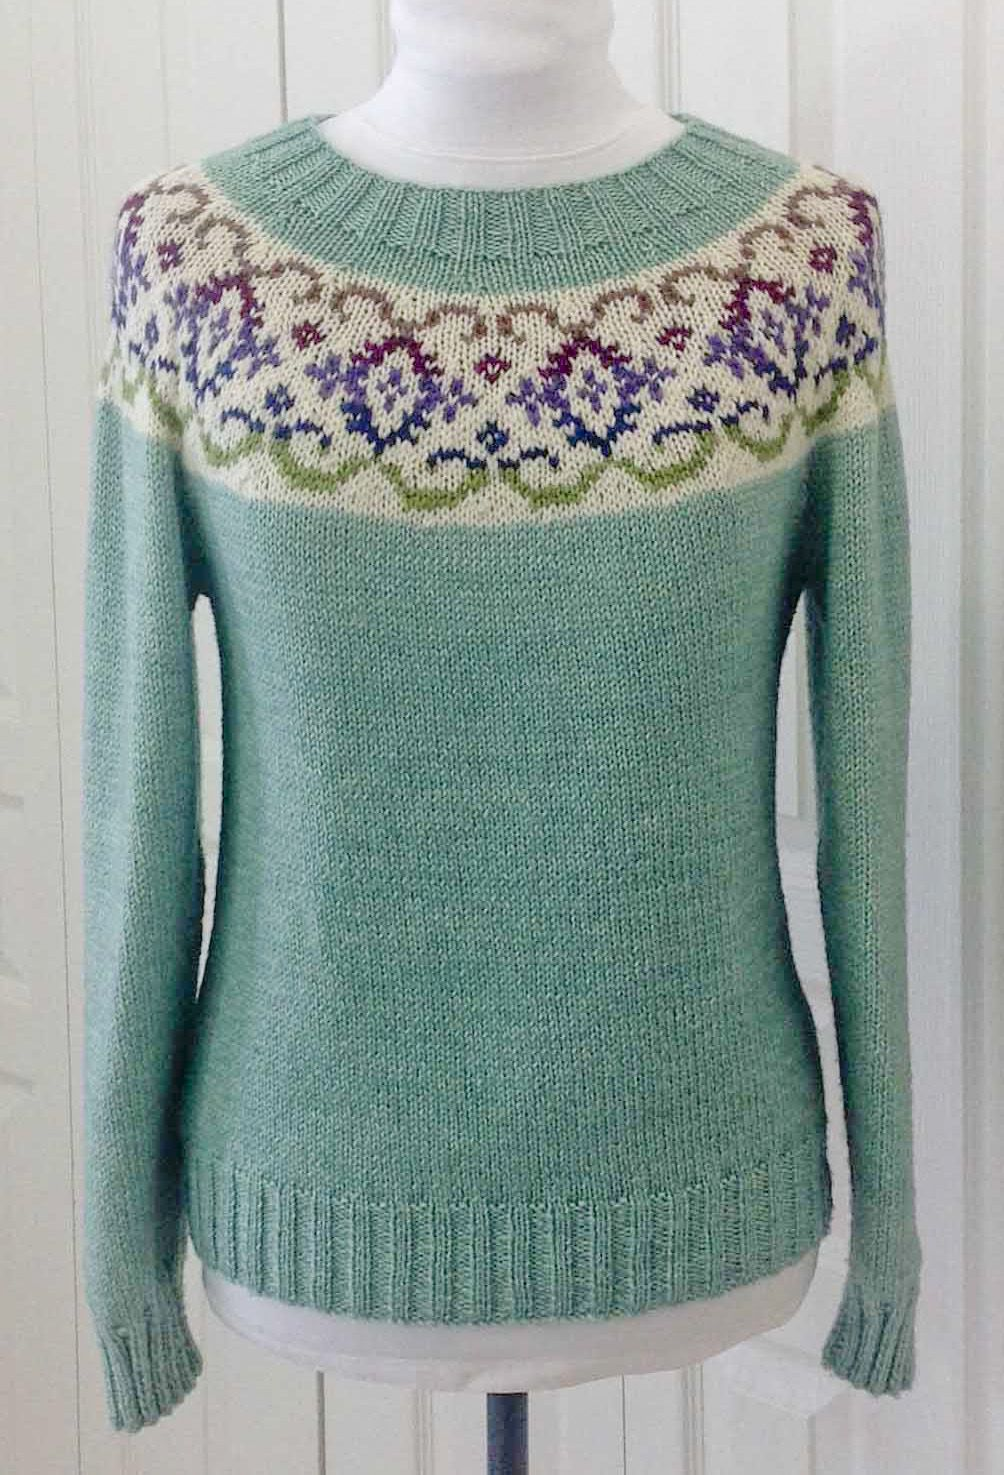 Fair isle knitting projects experienced knitters will adore fair isle knitting projects experienced knitters will adore bankloansurffo Image collections